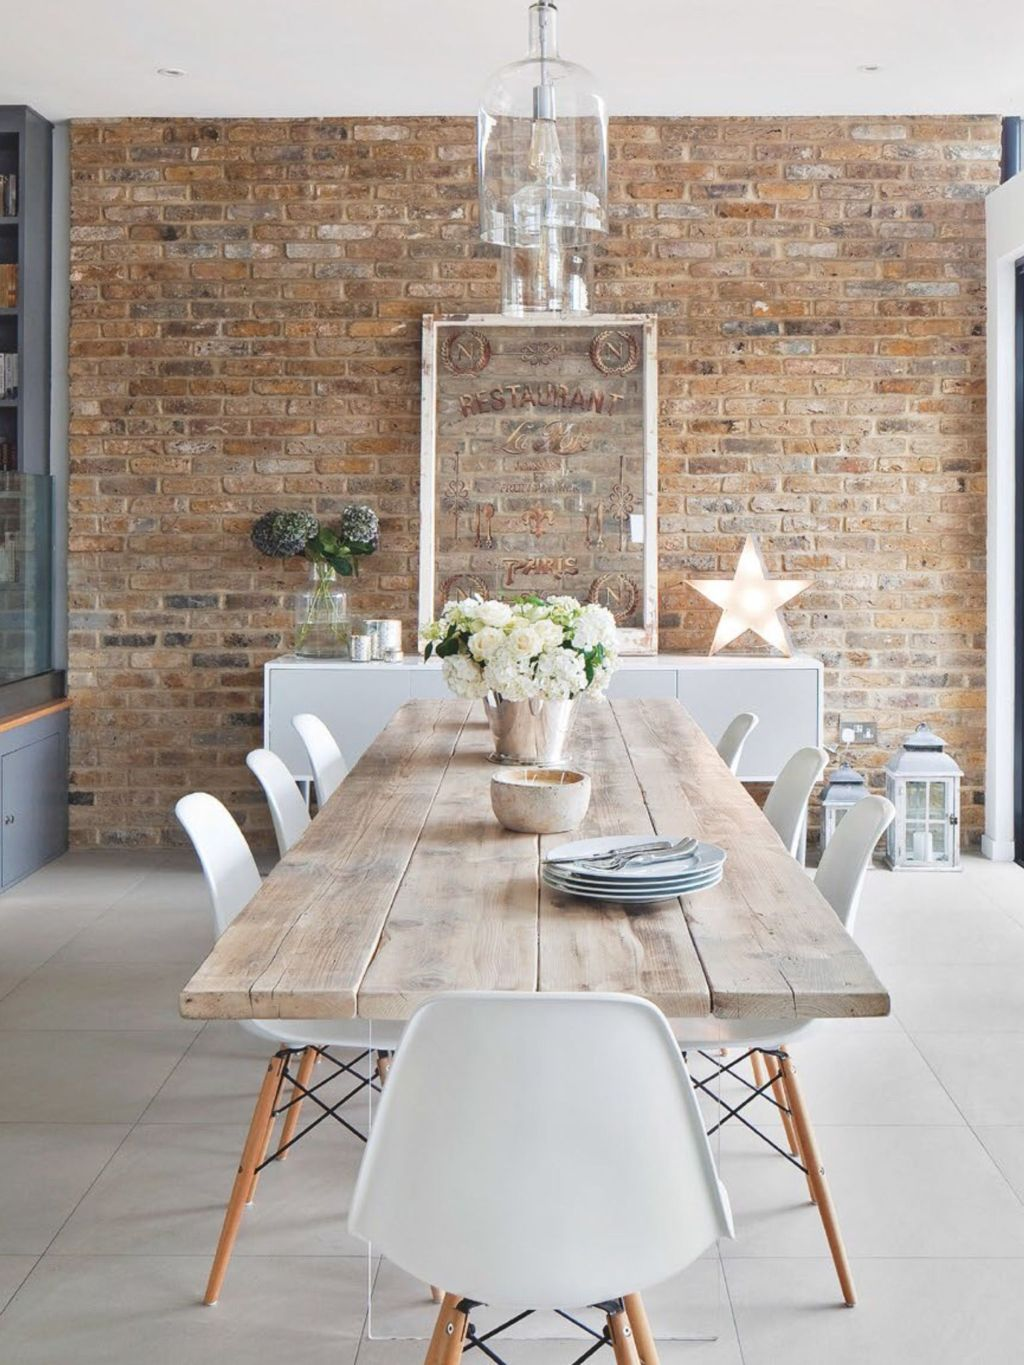 Modern Coastal Dining Room – A Refreshment in Home Update images